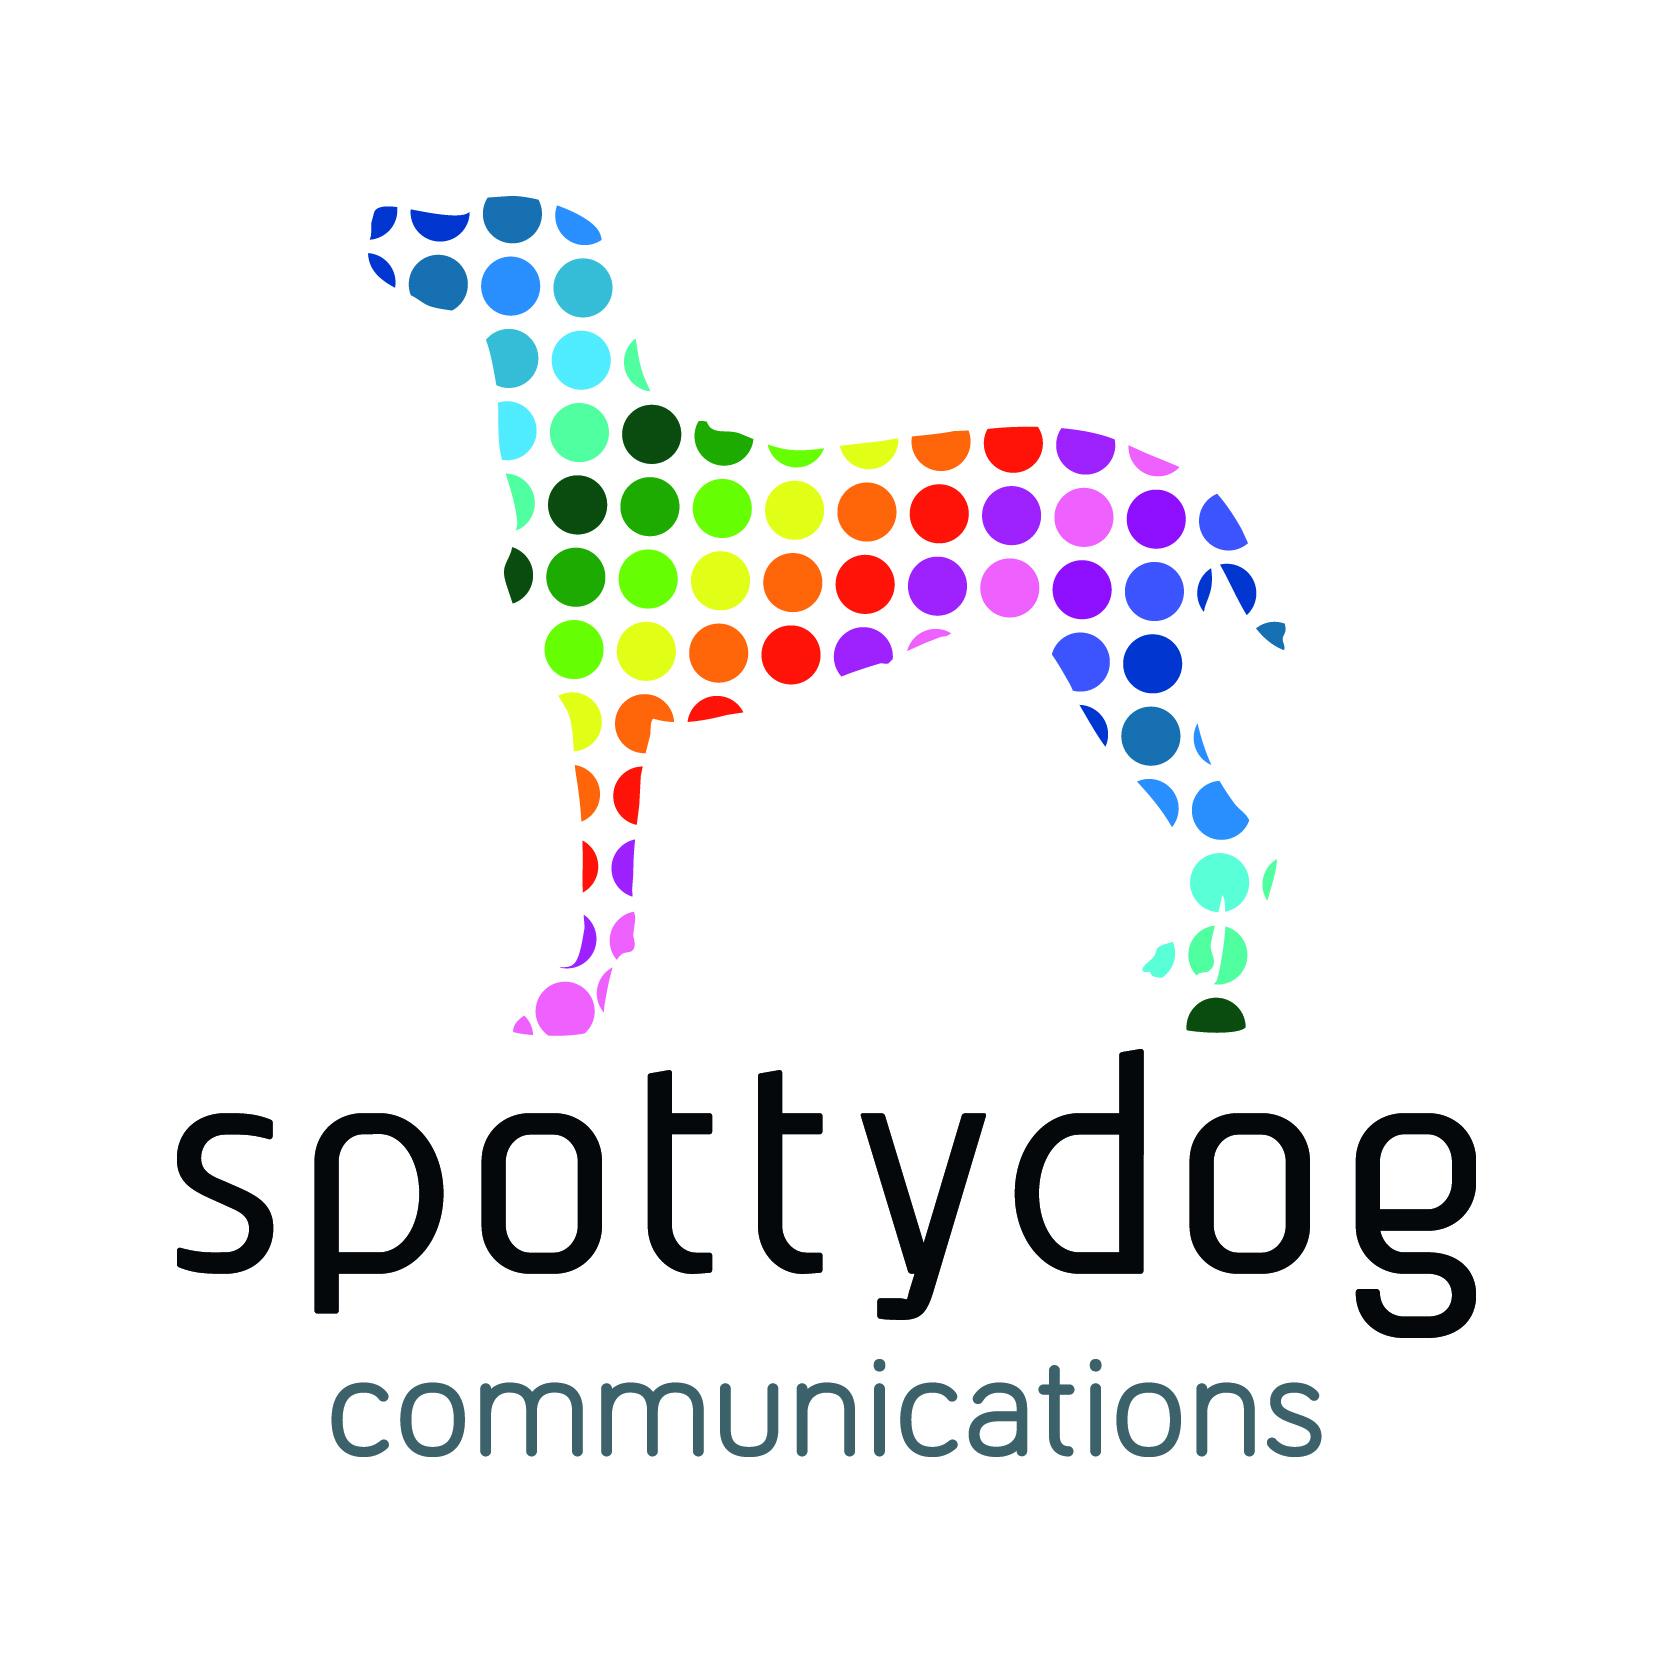 spottydog-communications-logo